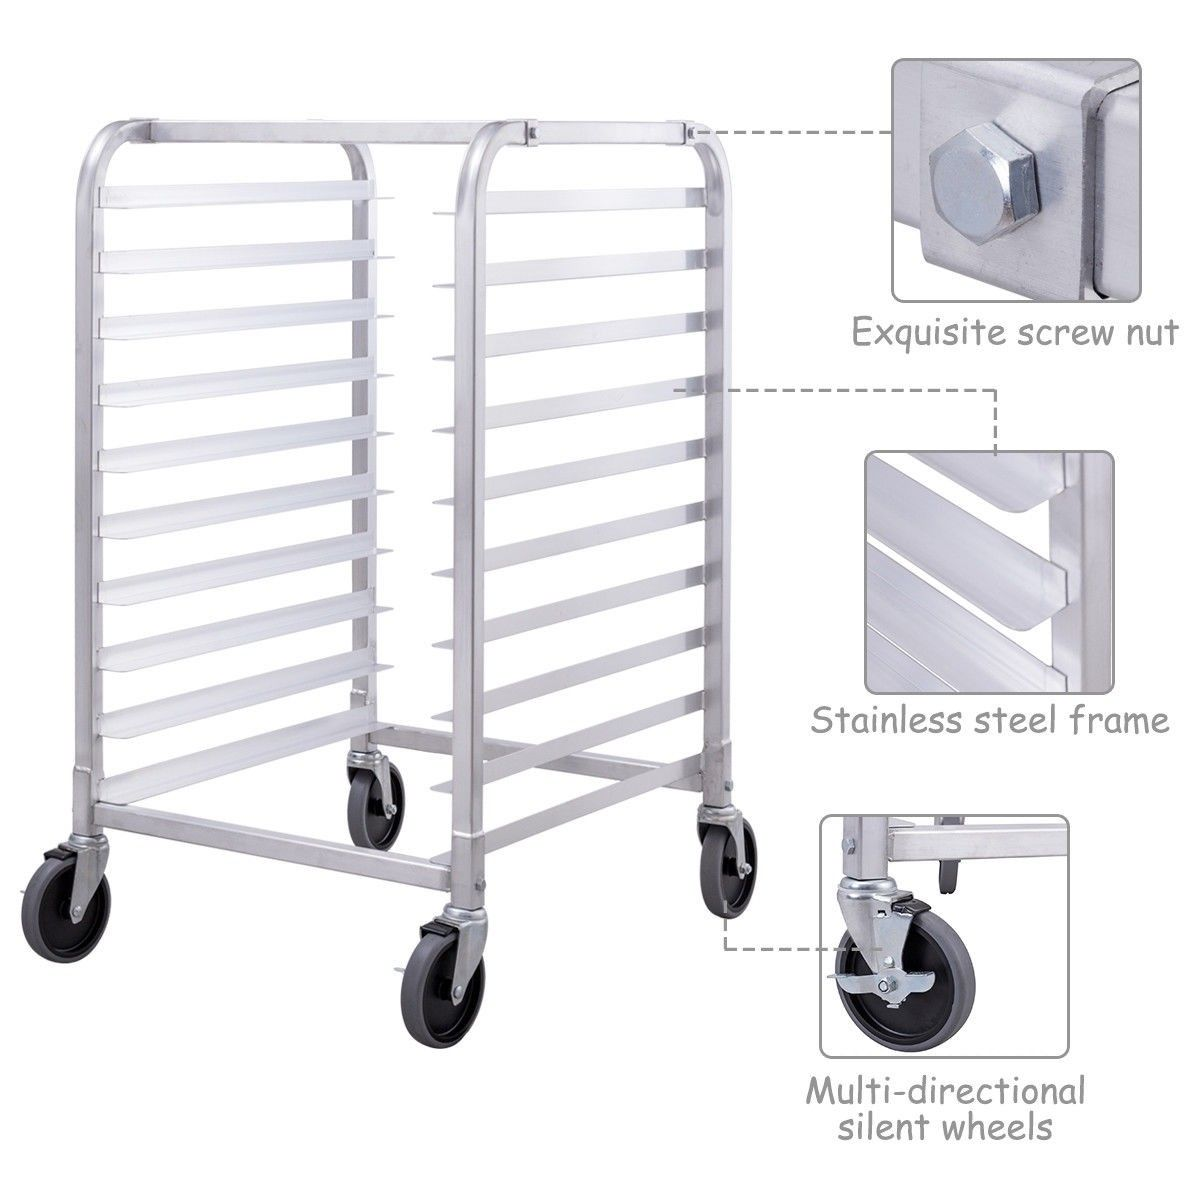 10 Sheet Aluminum Rolling Bakery Pan Rack Storage Design Bakery Full Size Sheets